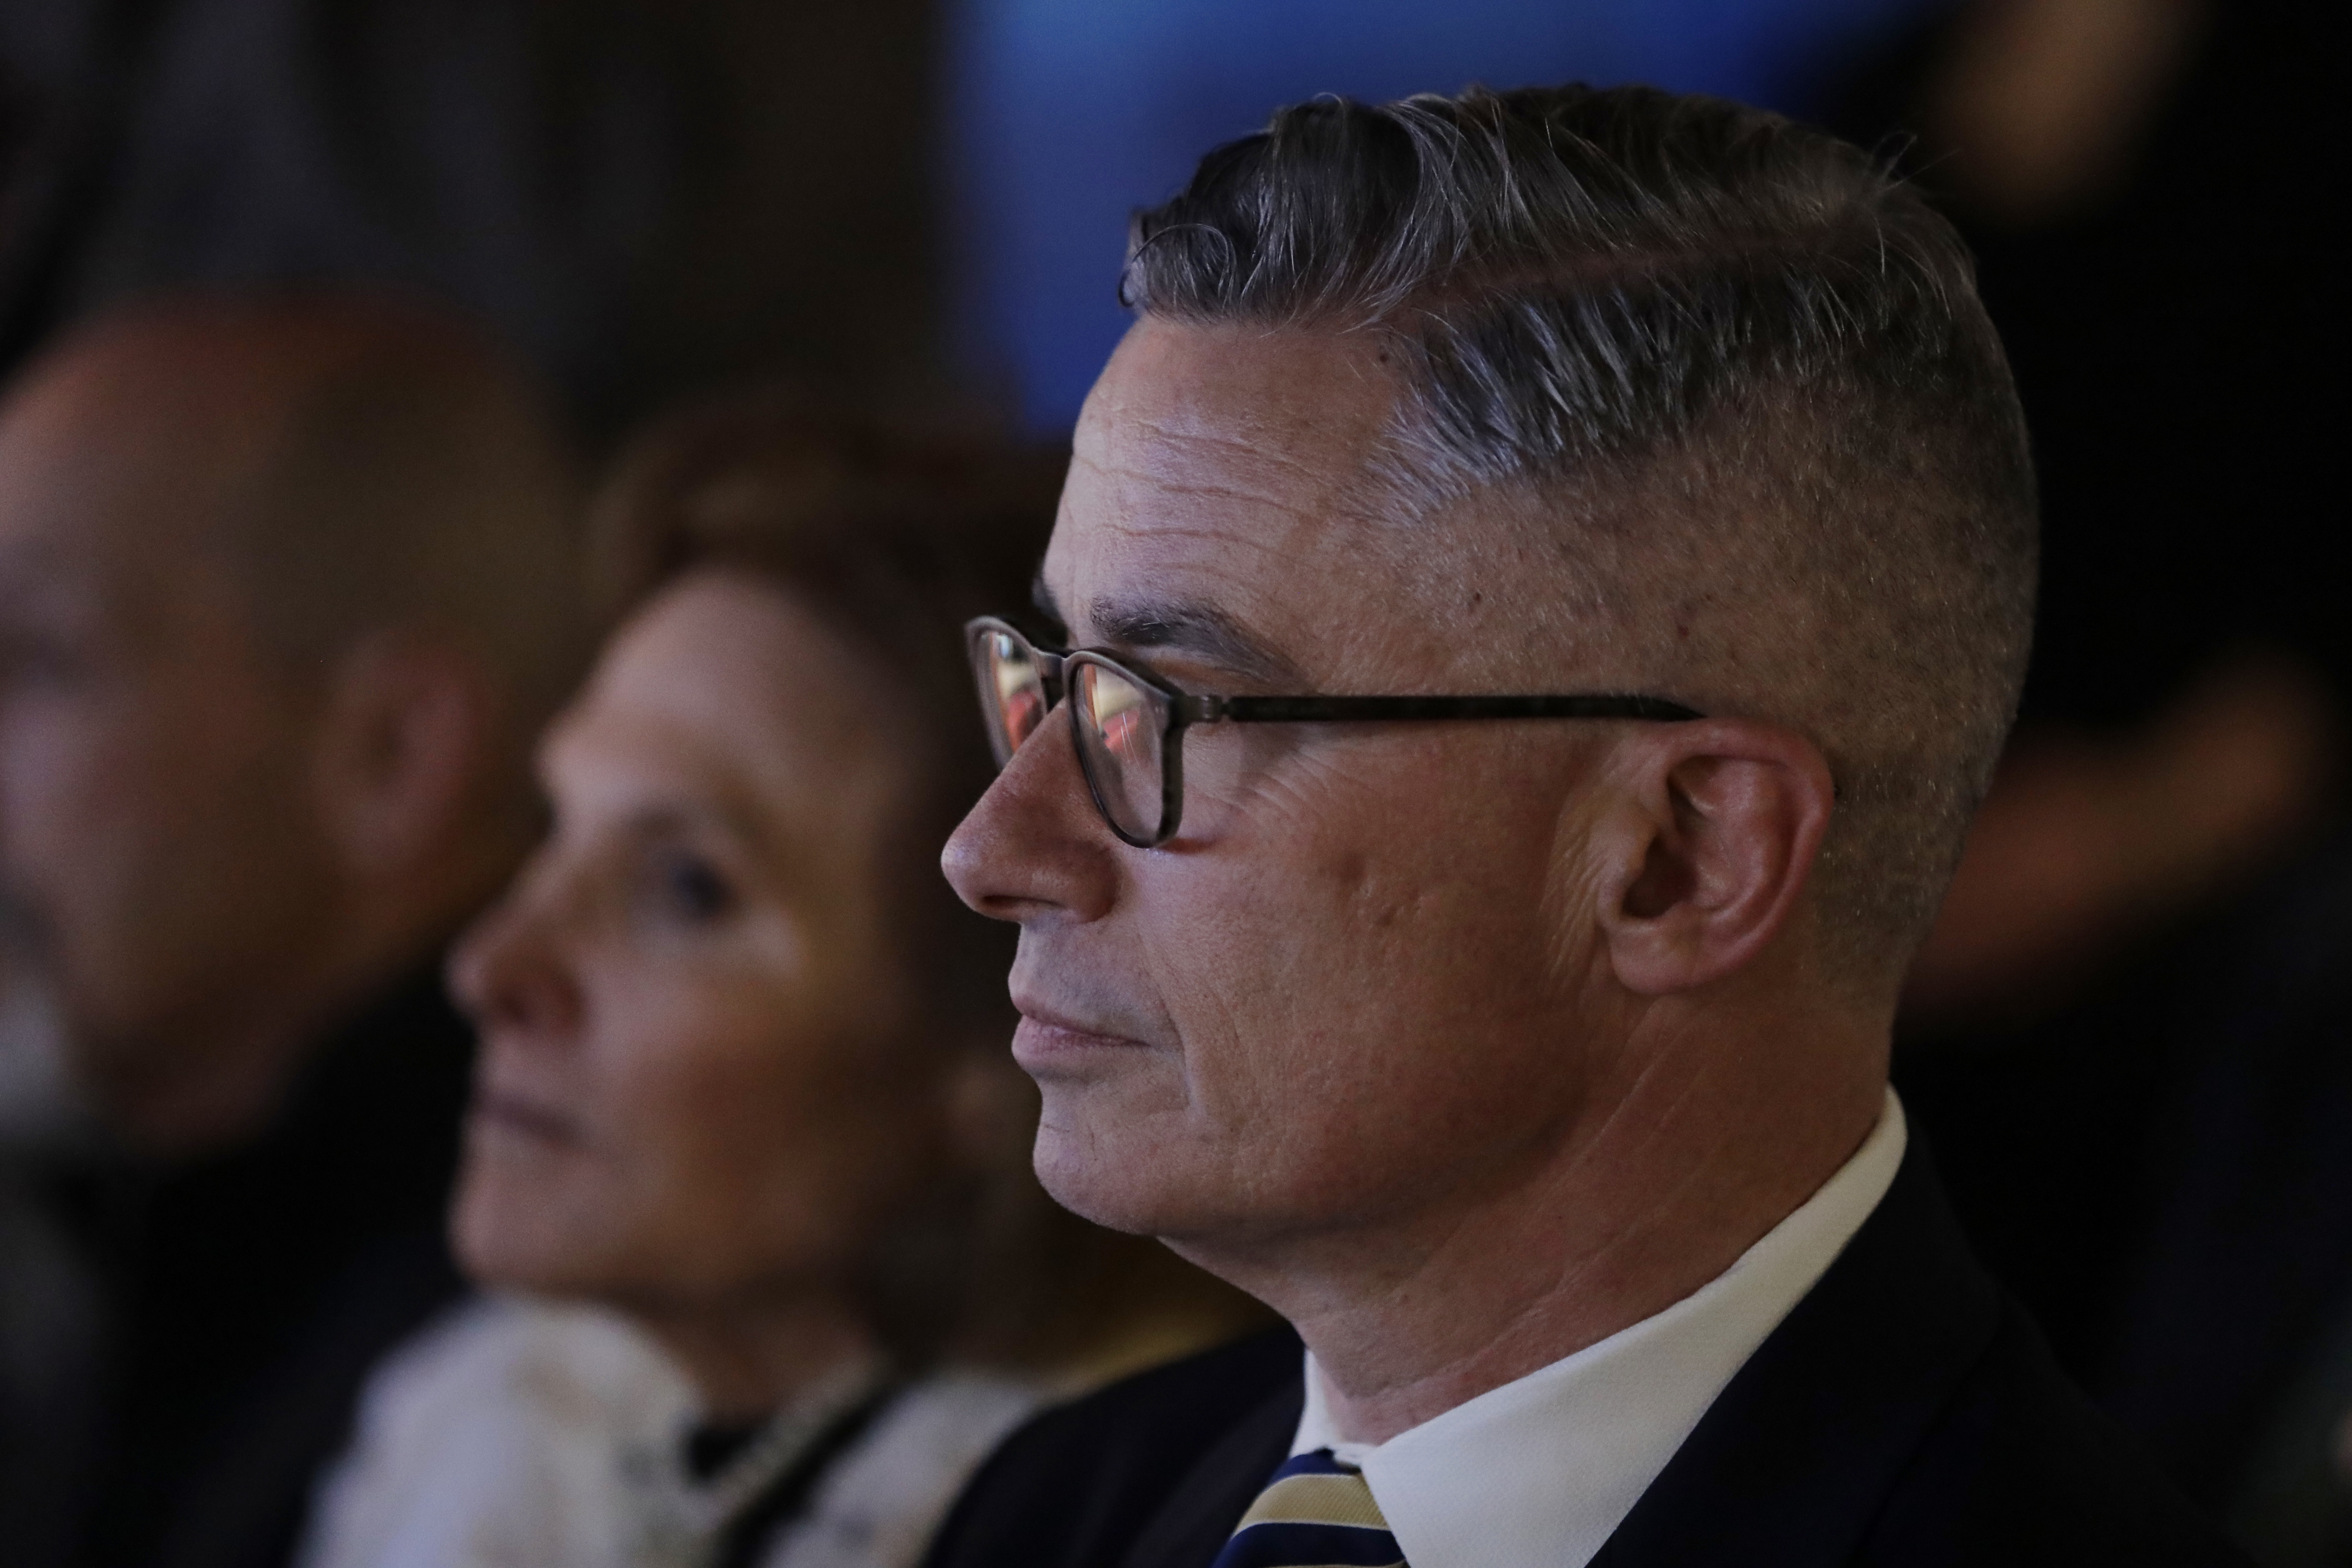 Former New Jersey Gov. Jim McGreevey looks on before the start of a Democratic gubernatorial primary debate, Thursday, May 11, 2017, in Newark, N.J.